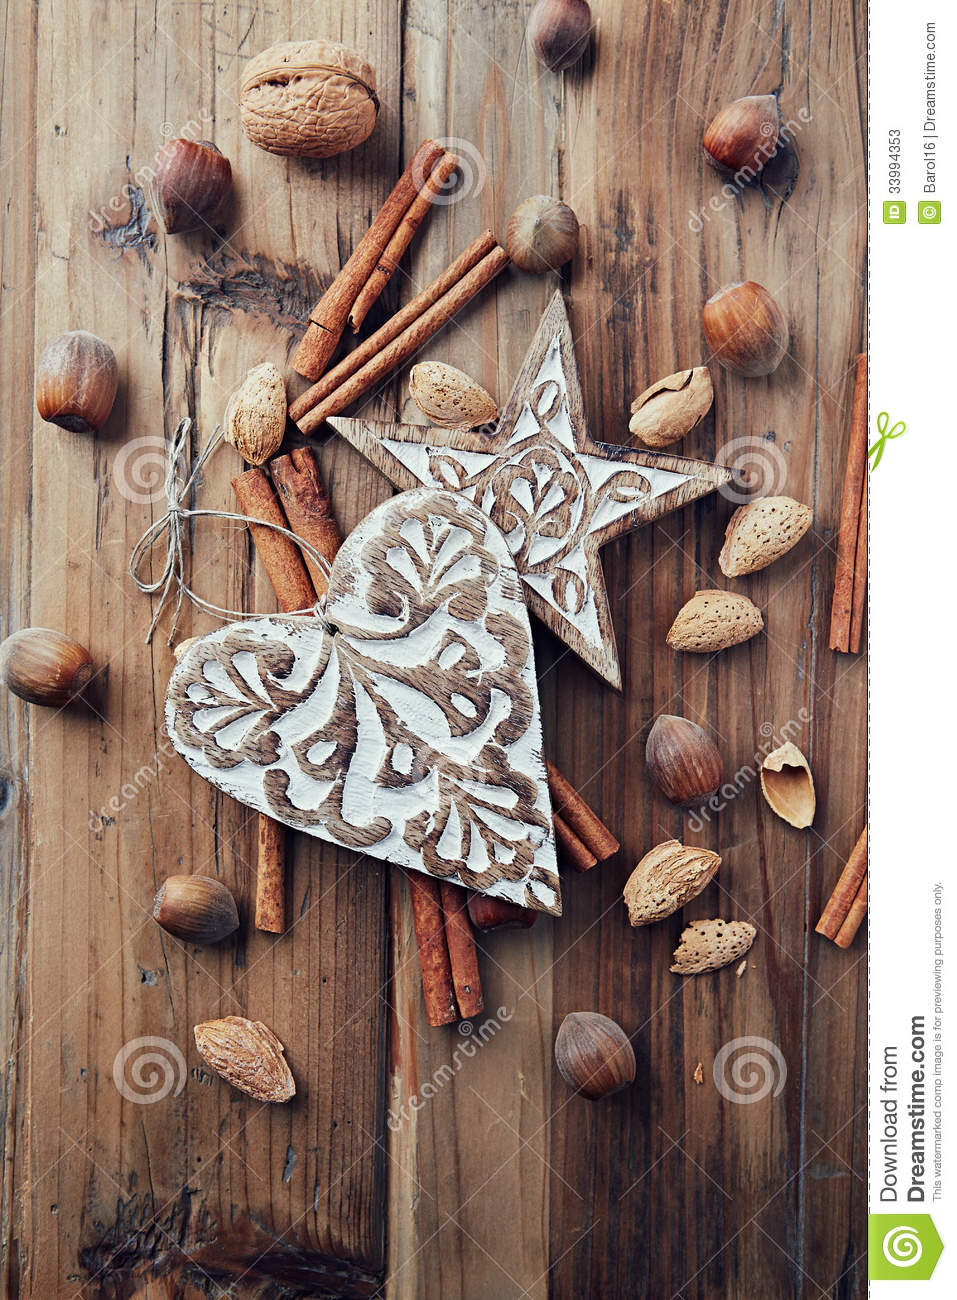 Rustic Christmas Decorations Rustic Christmas Decorations